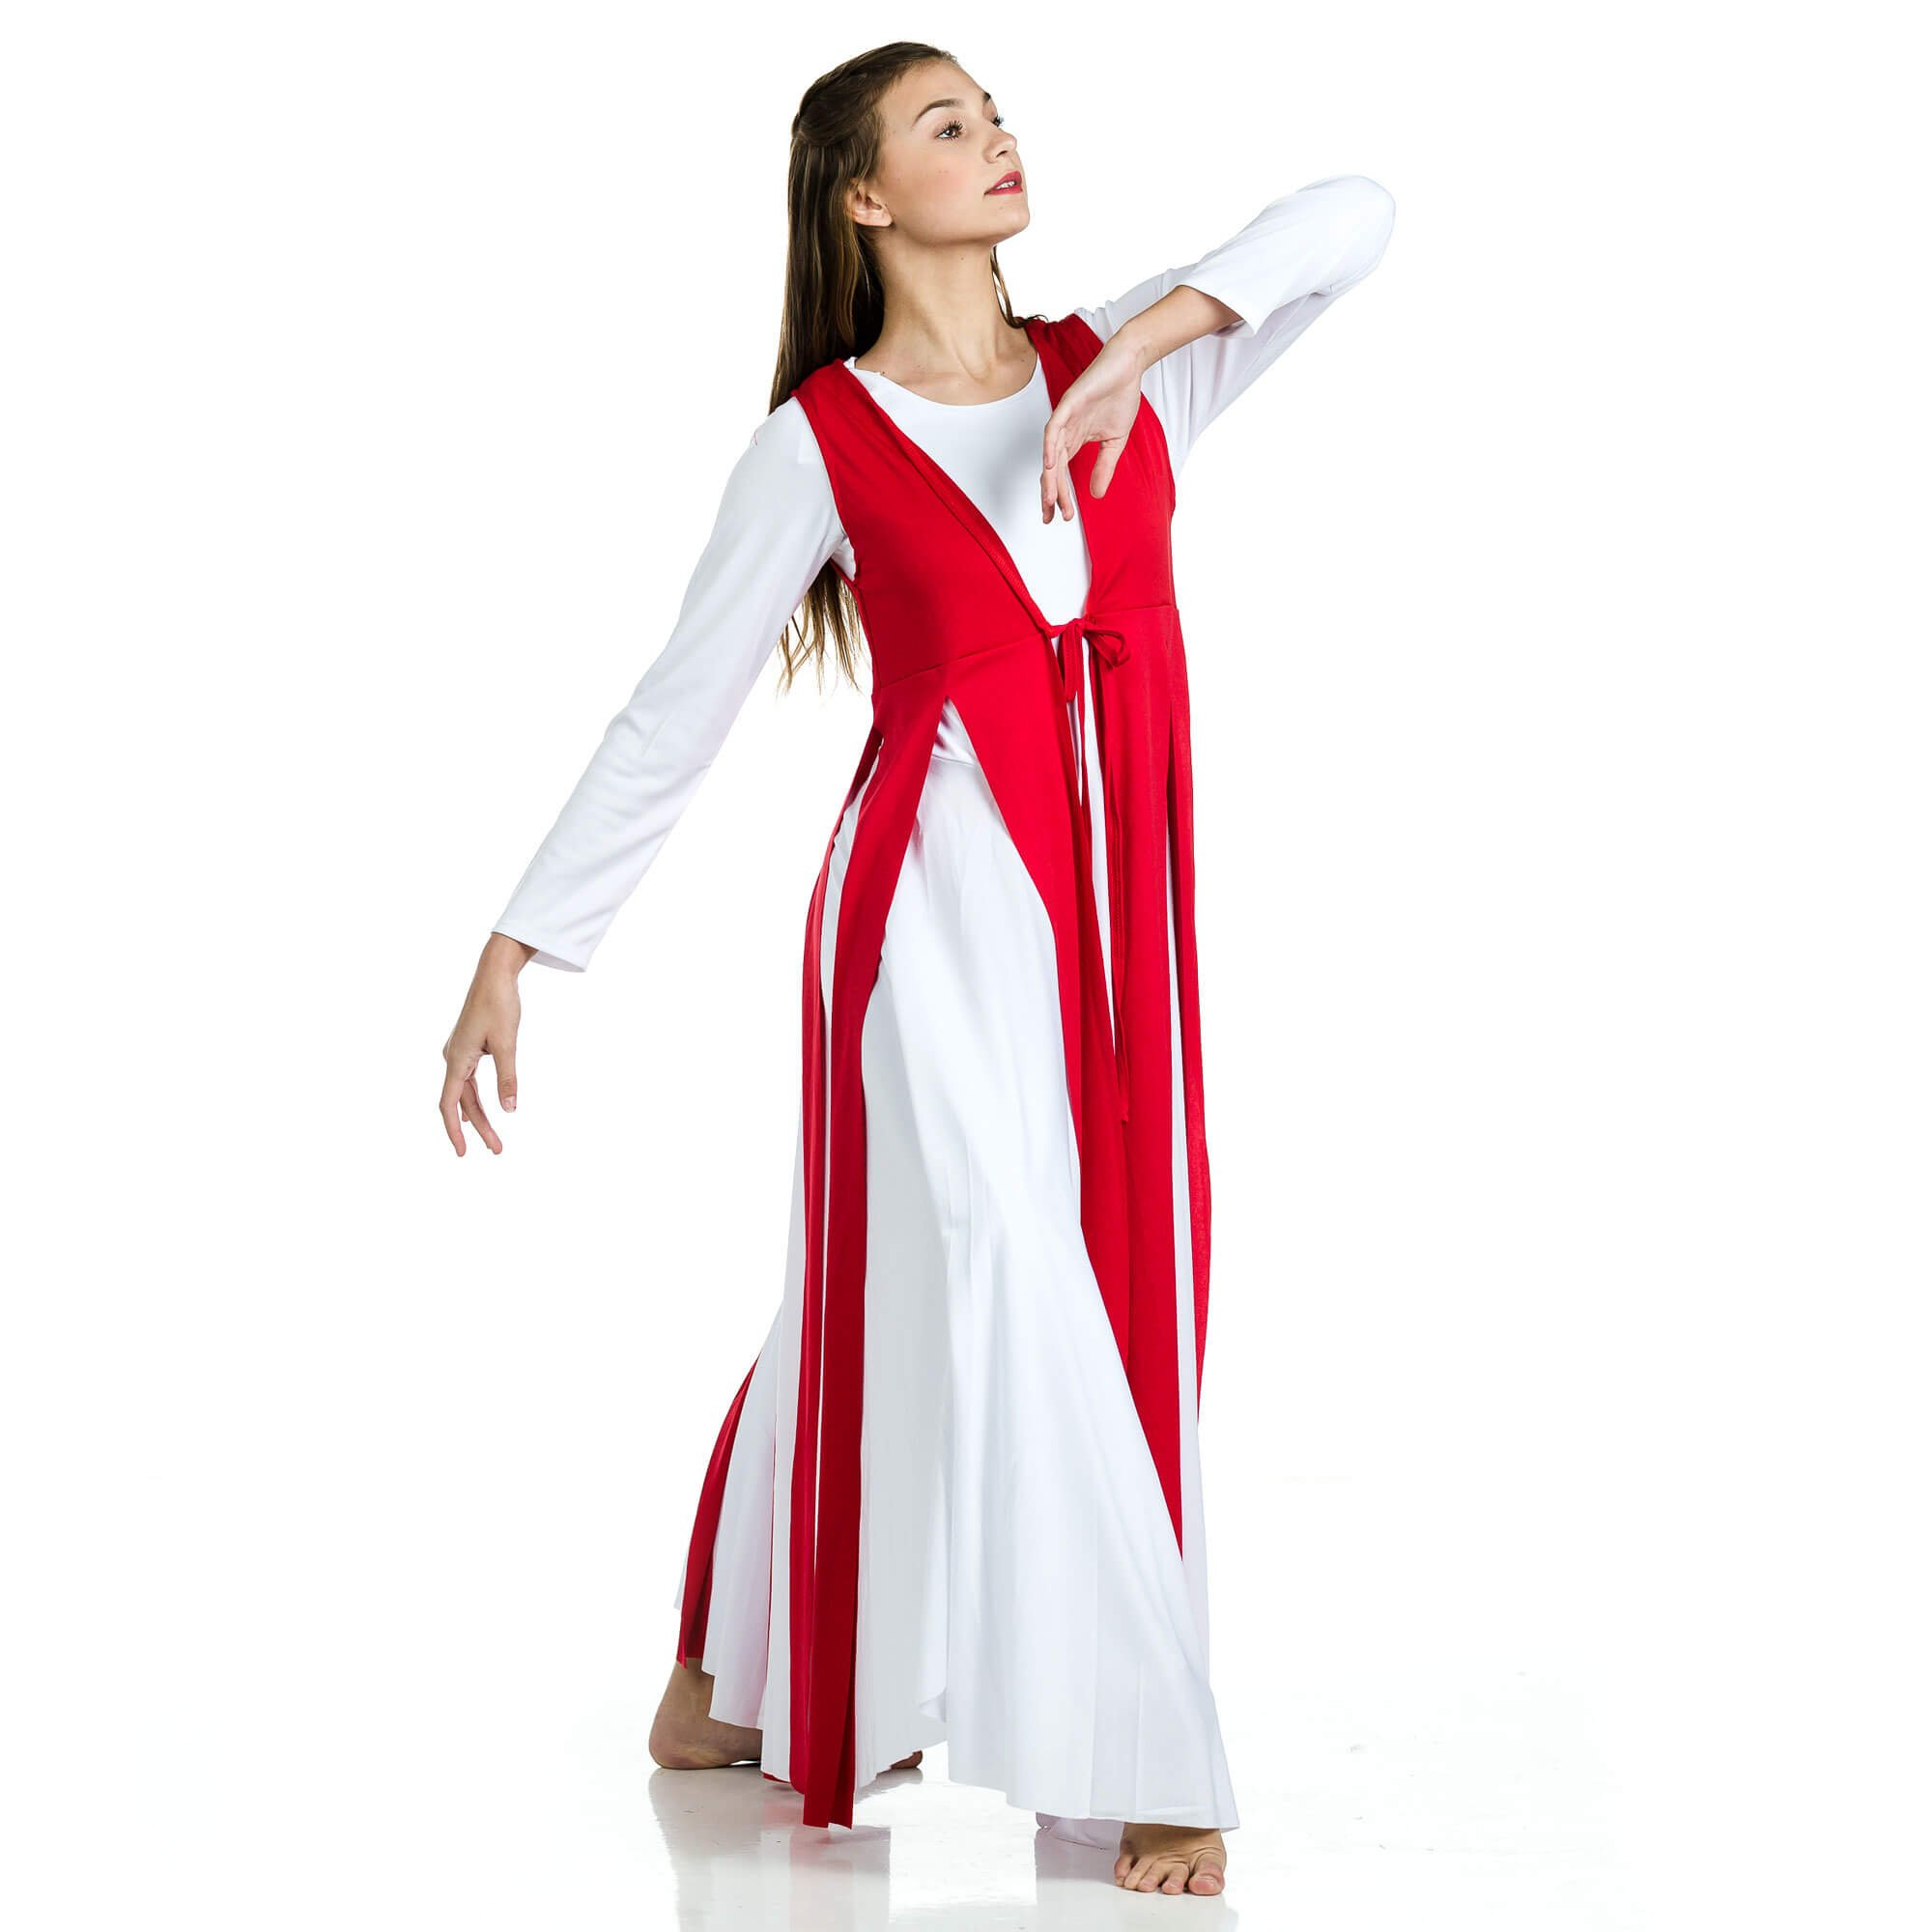 Danzcue Worship Dance Streamer Tunic (Dress not Included) - Click Image to Close